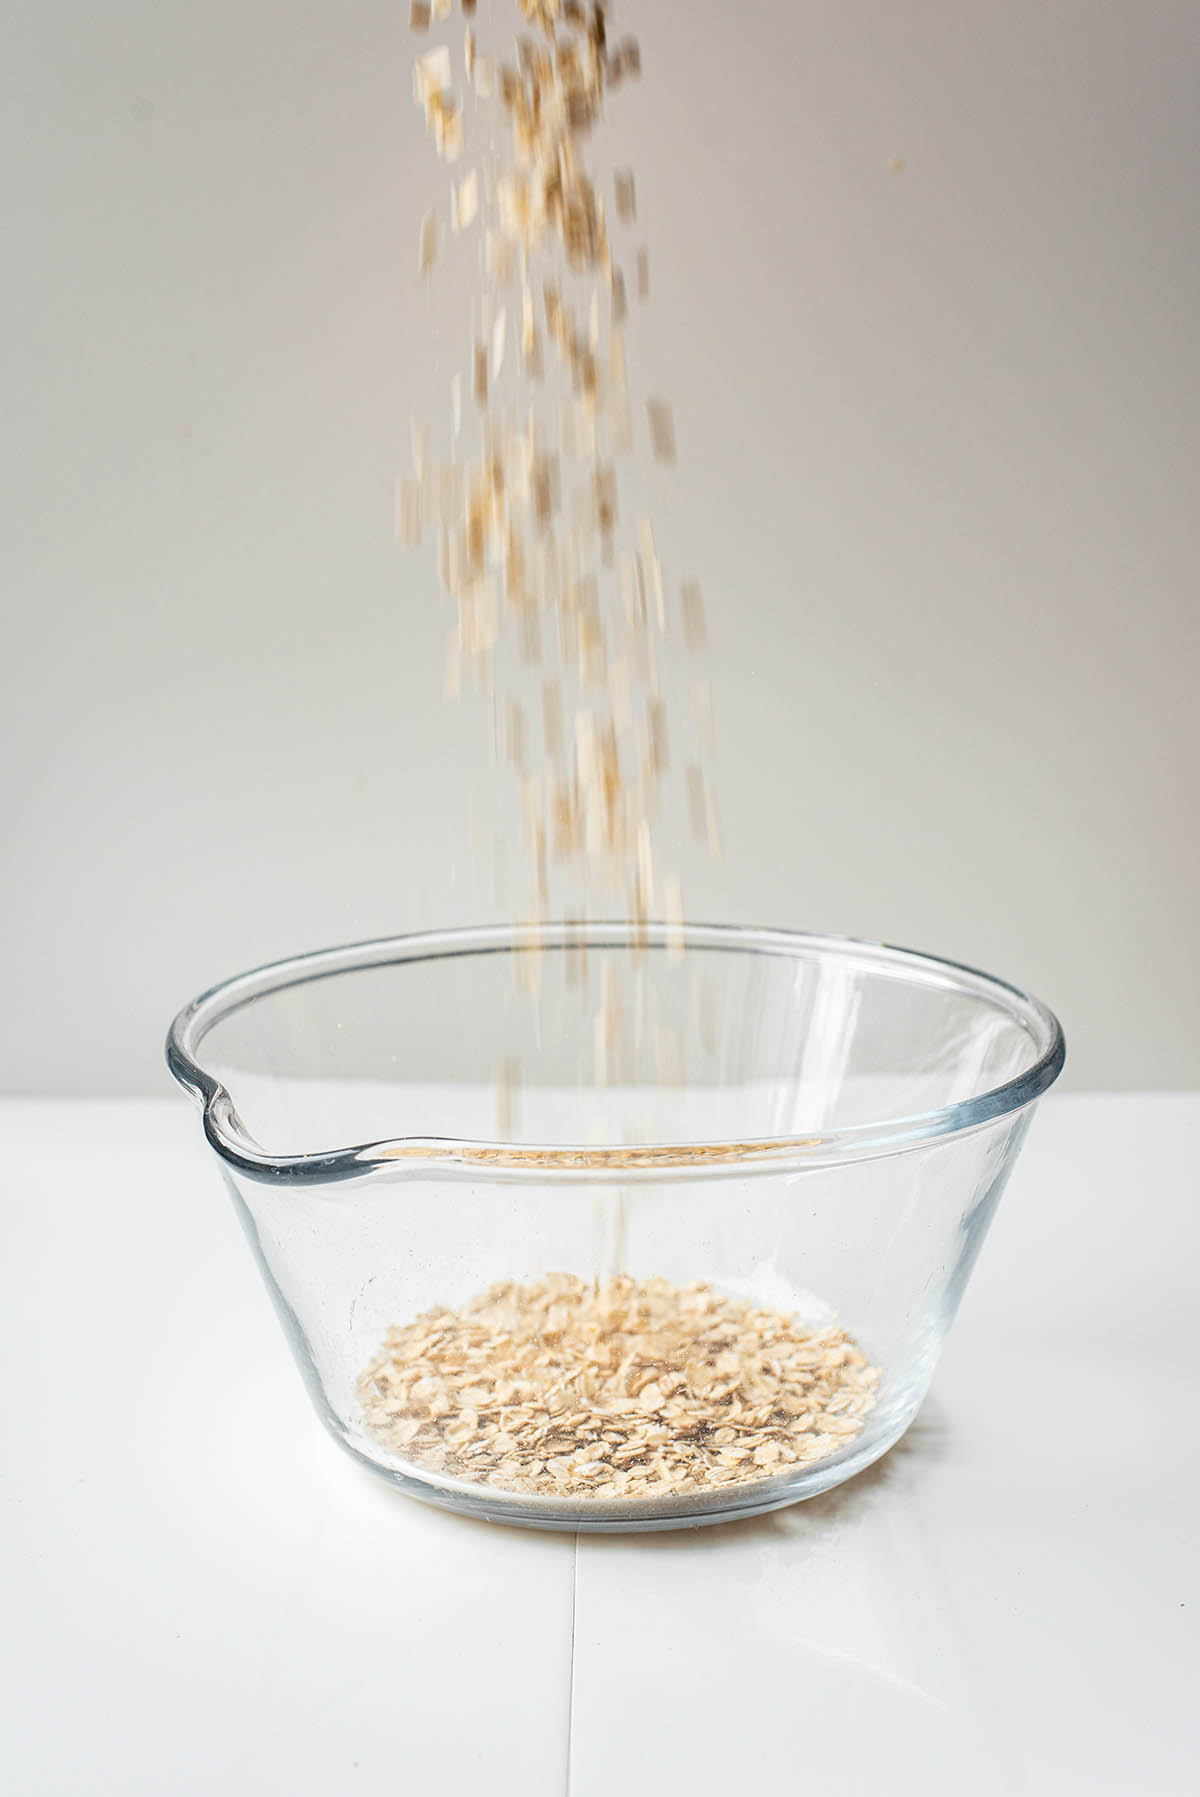 Oats being poured into a large glass bowl.